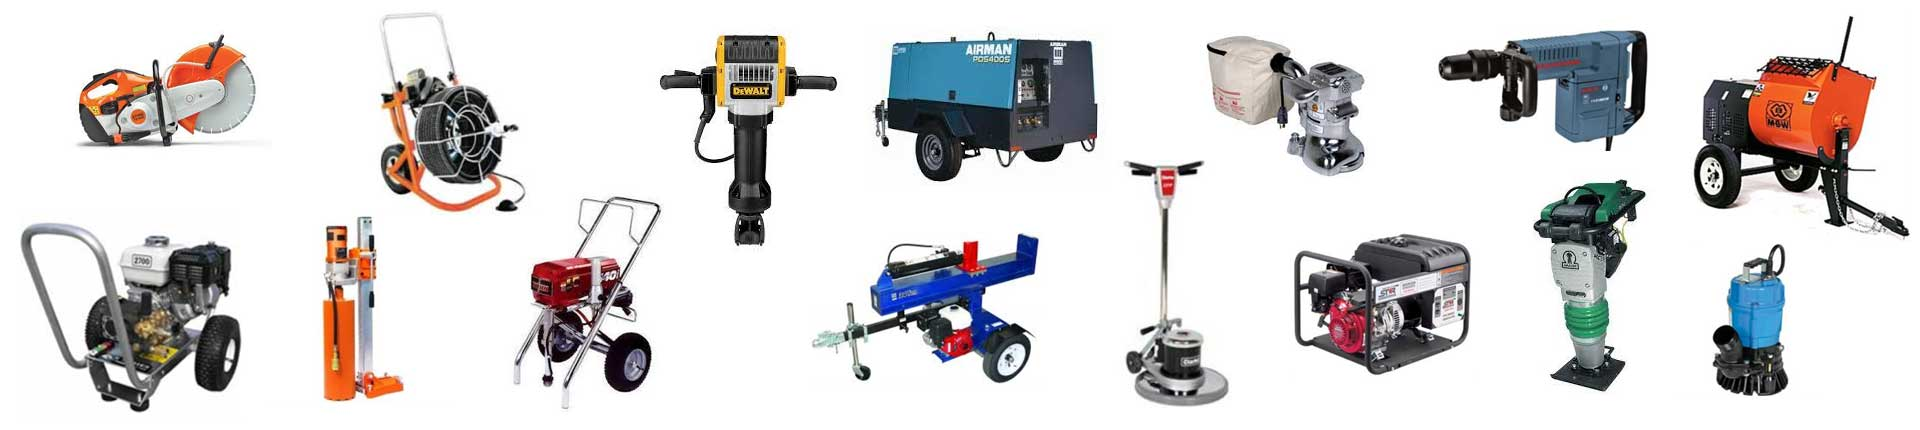 Equipment & tool rentals in Marshall County & Northern Alabama